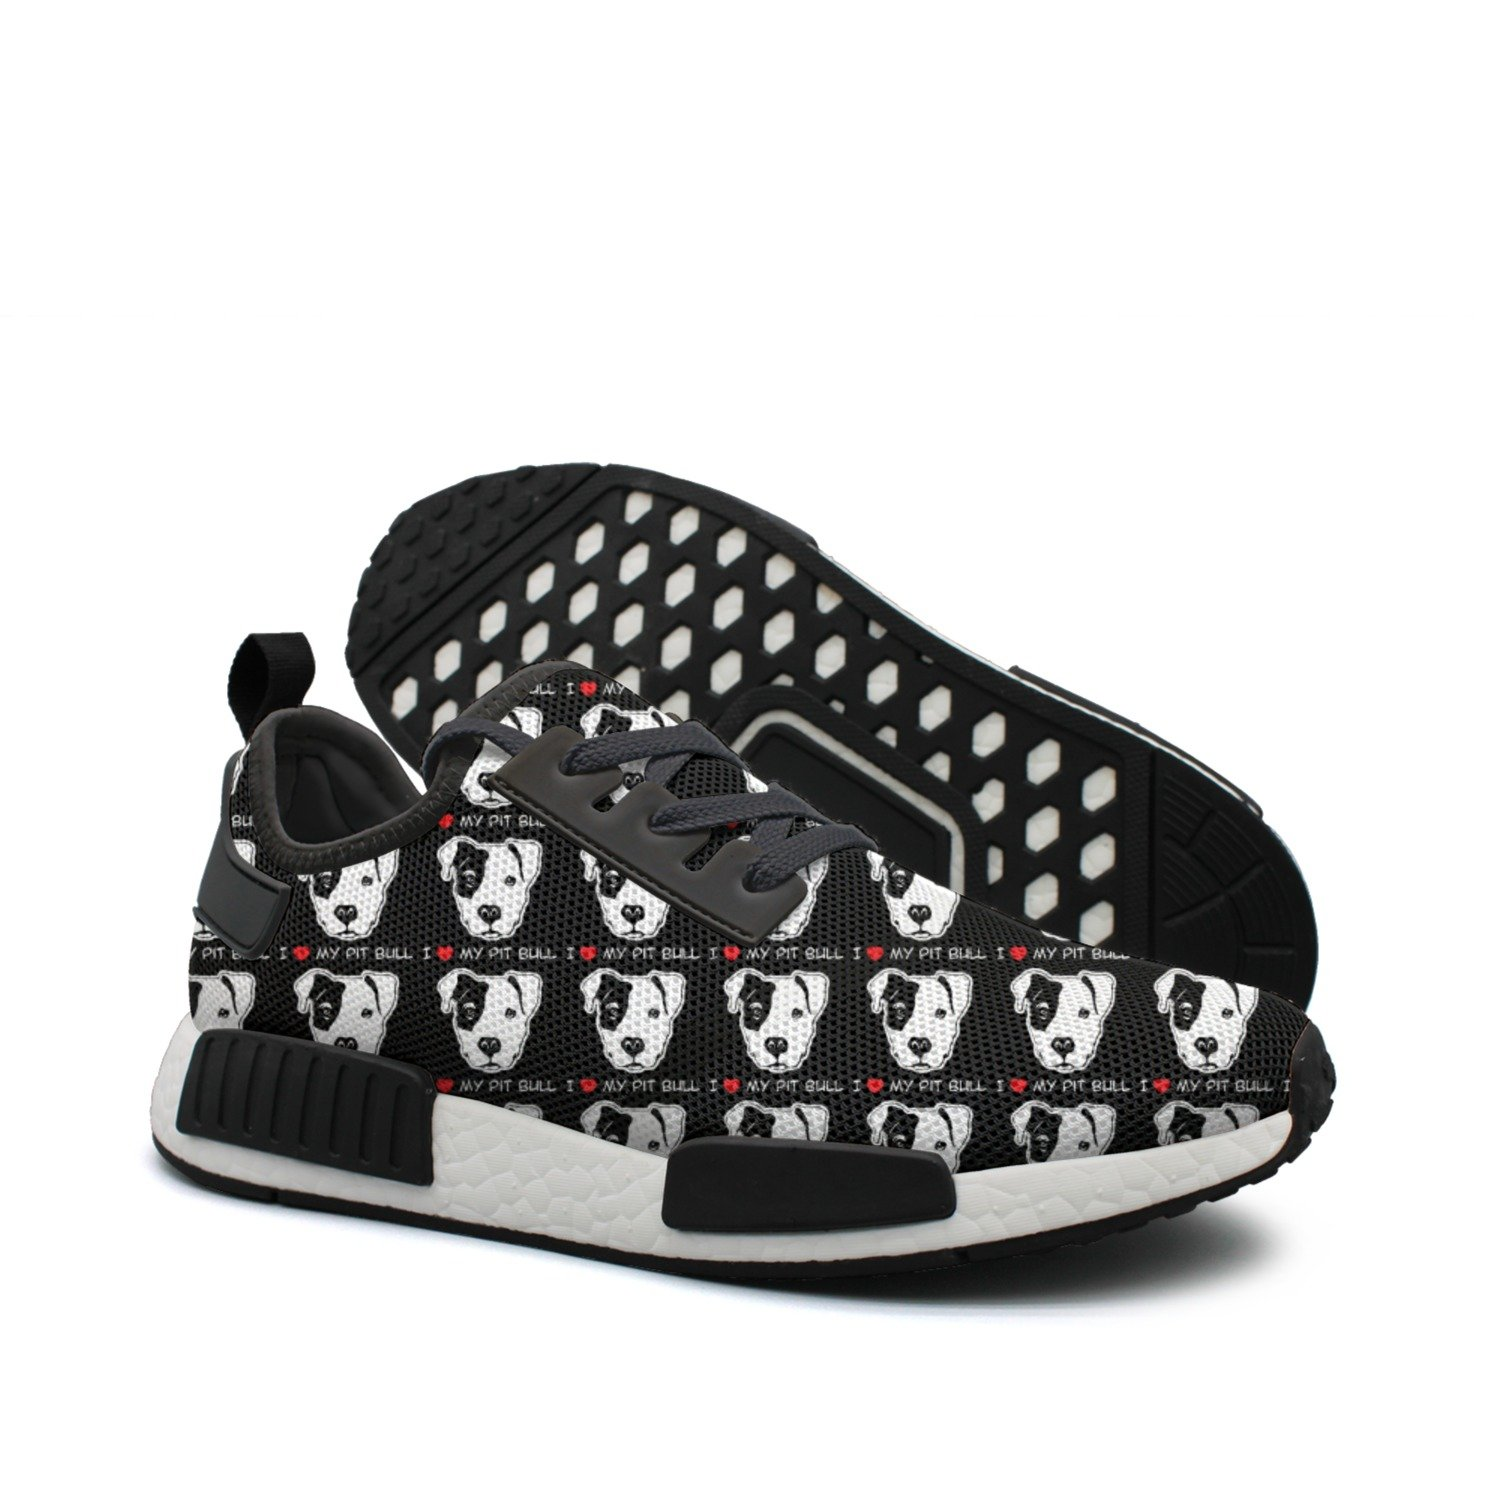 WhiteUnicorn Men's I Love Pit Bull Pet Dog Pattern Sneakers Casual Running Shoes Outdoor Trainers